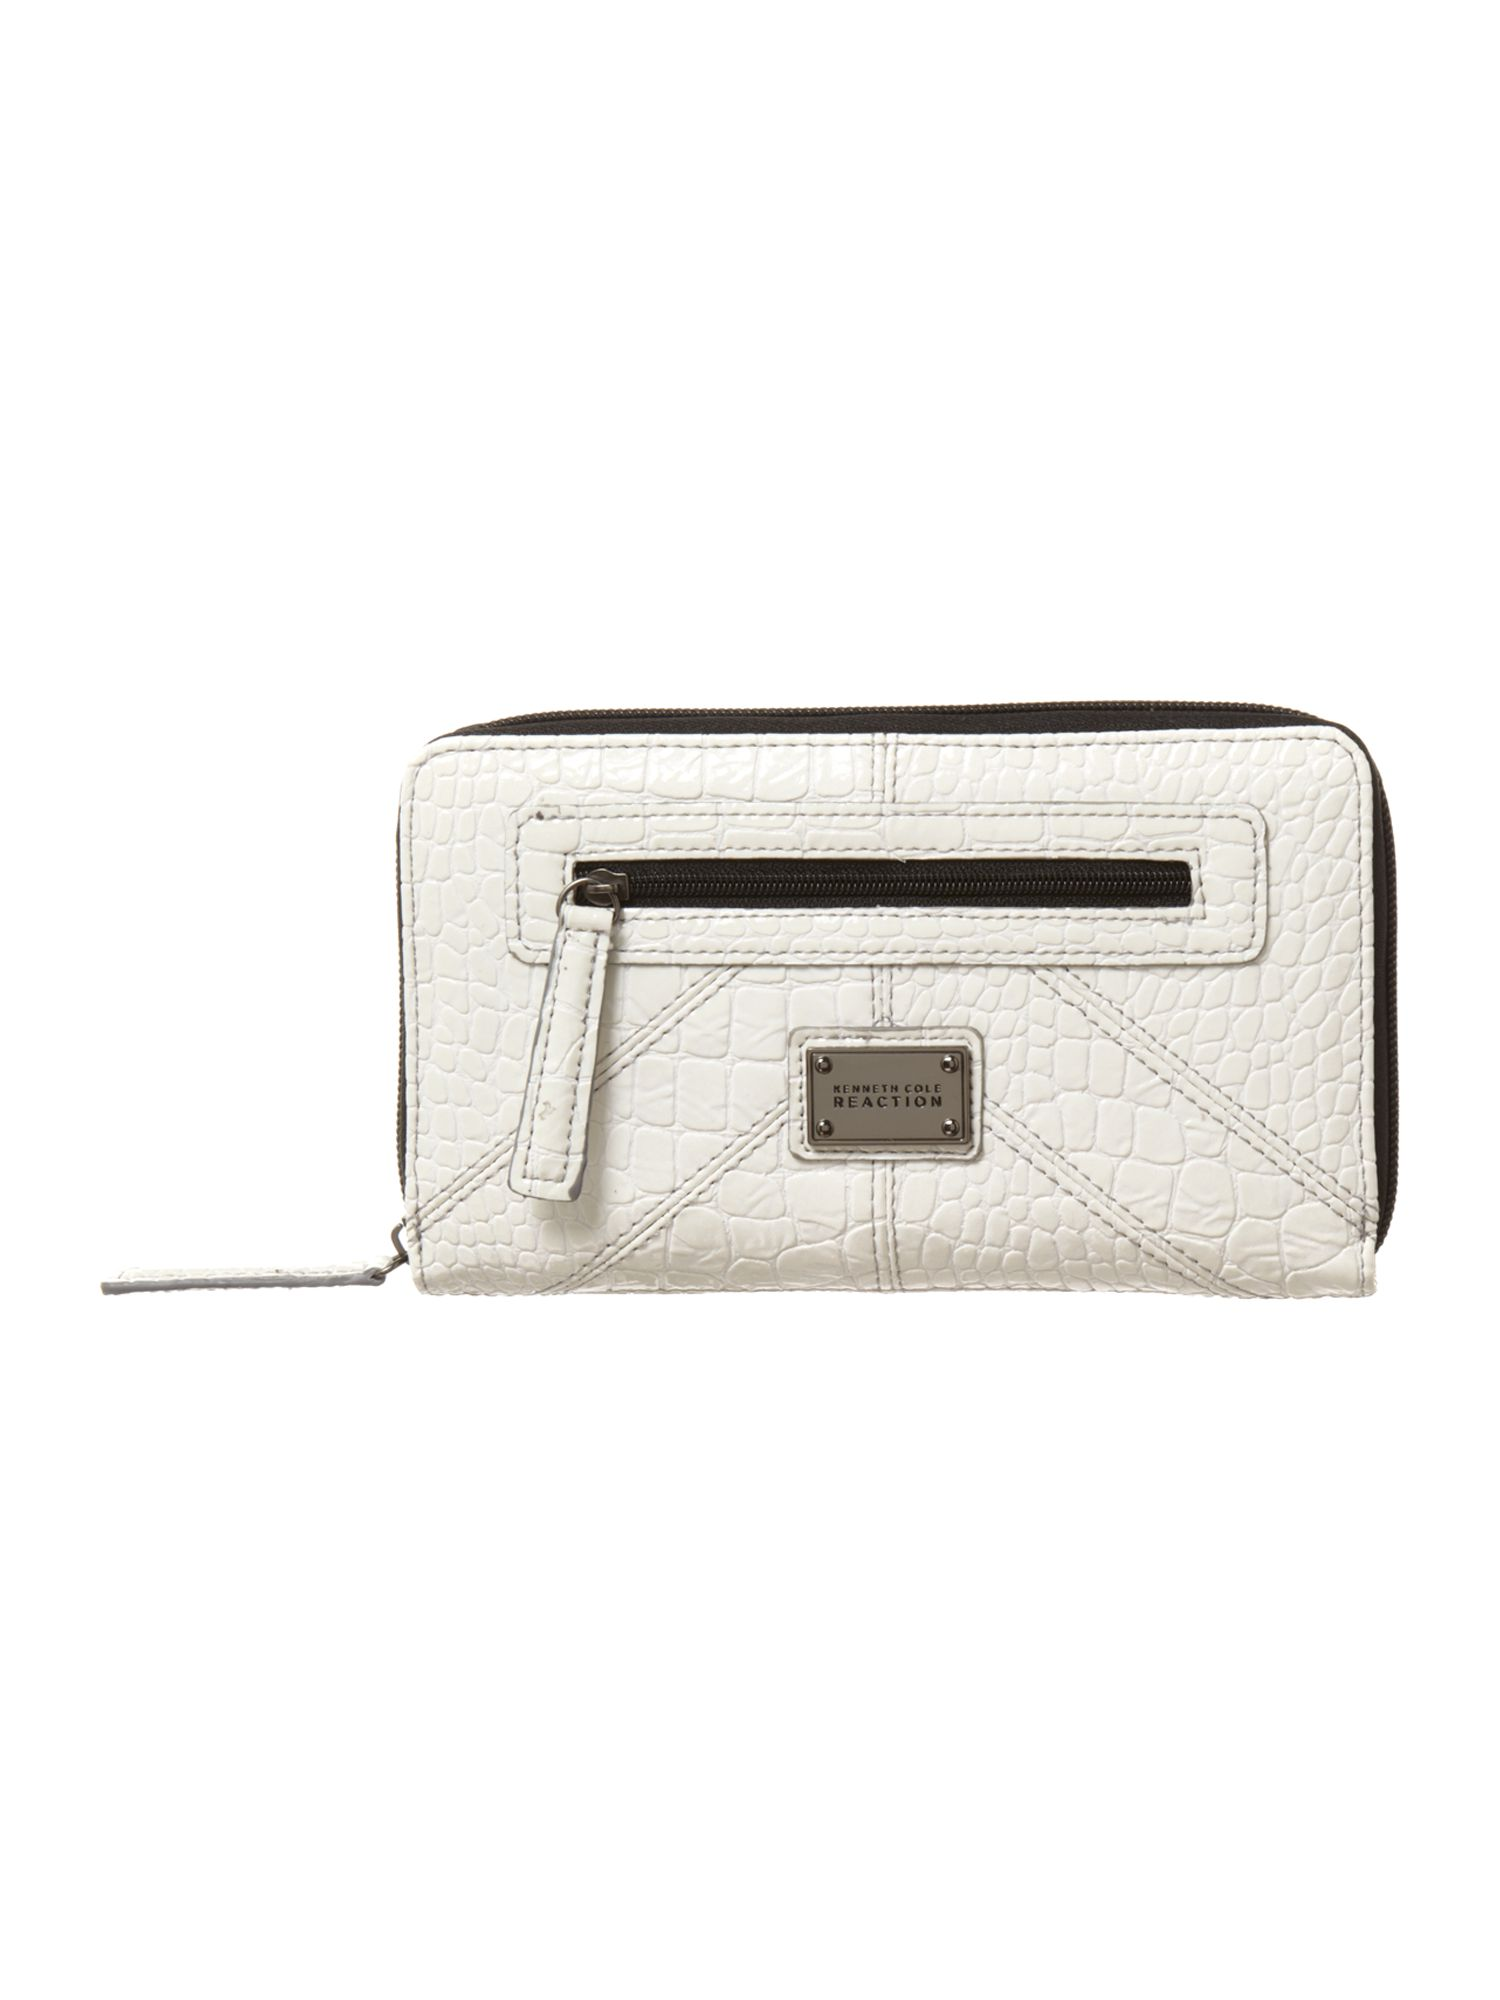 Mercer street large ziparound purse